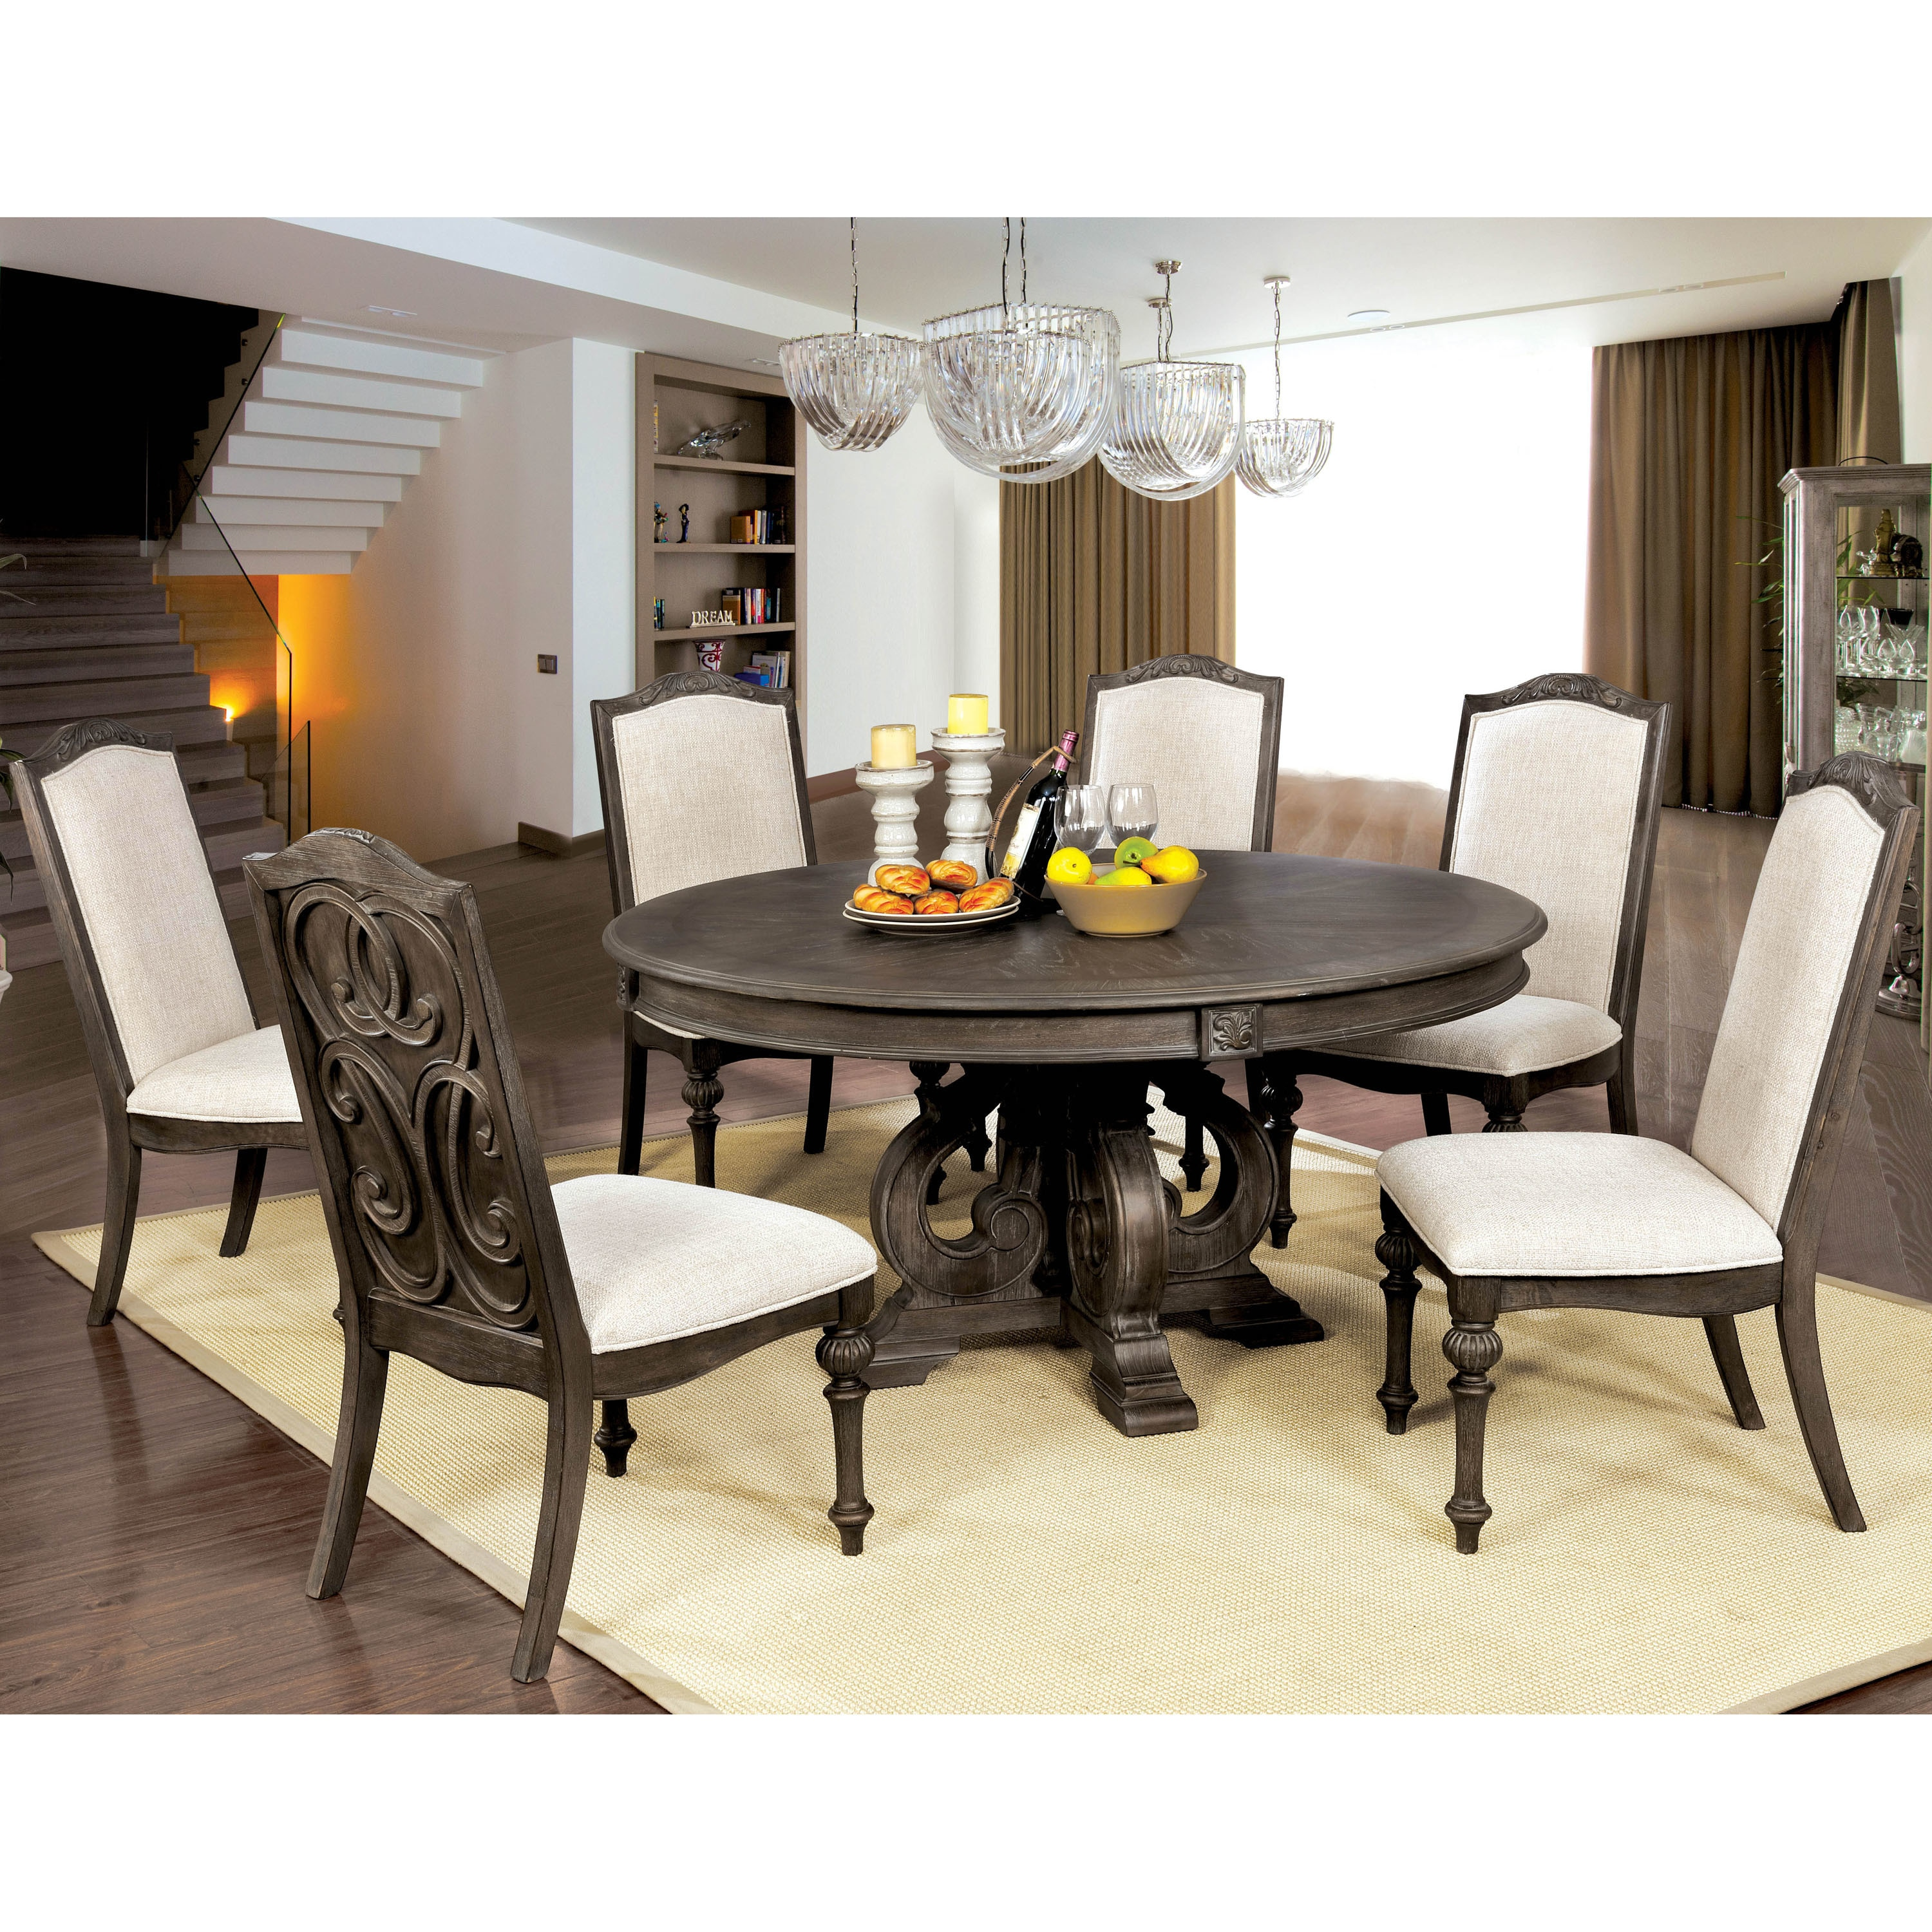 Rustic Brown Solid Wood Round Dining